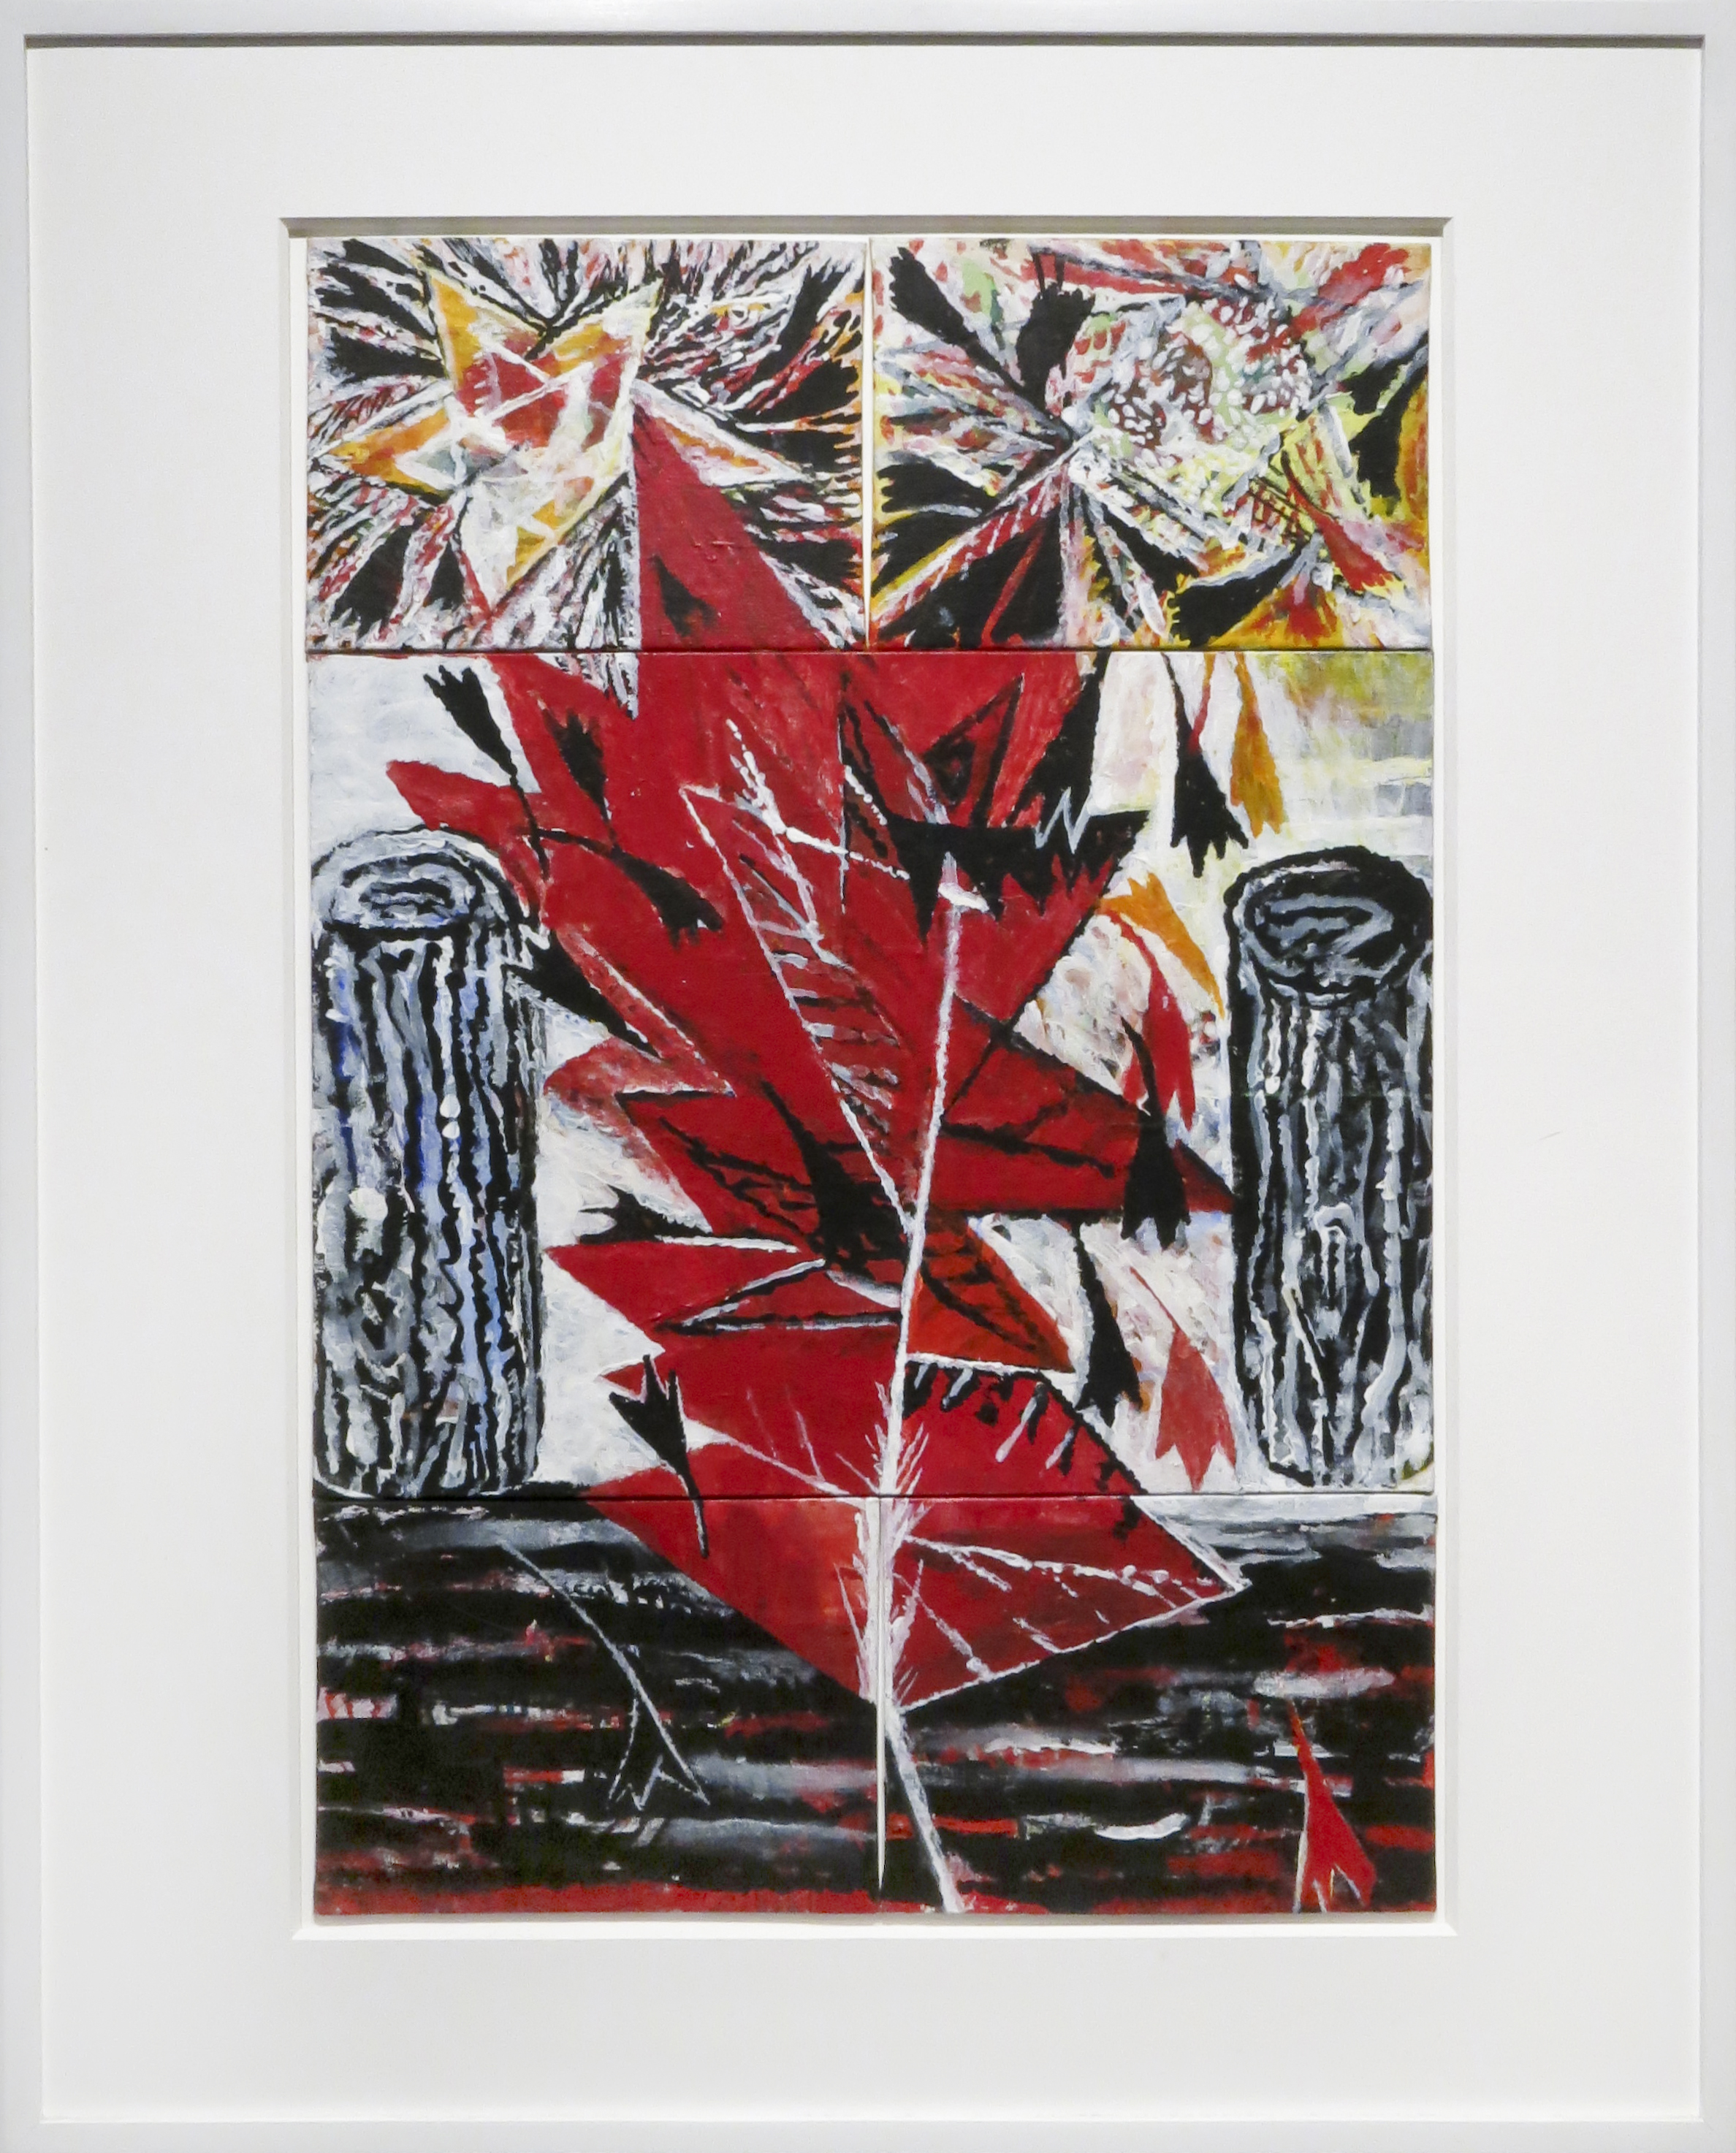 Jenny Snider,  Upright Leaf,  2013, acrylic on canvas board, 24h x 162 in. framed.